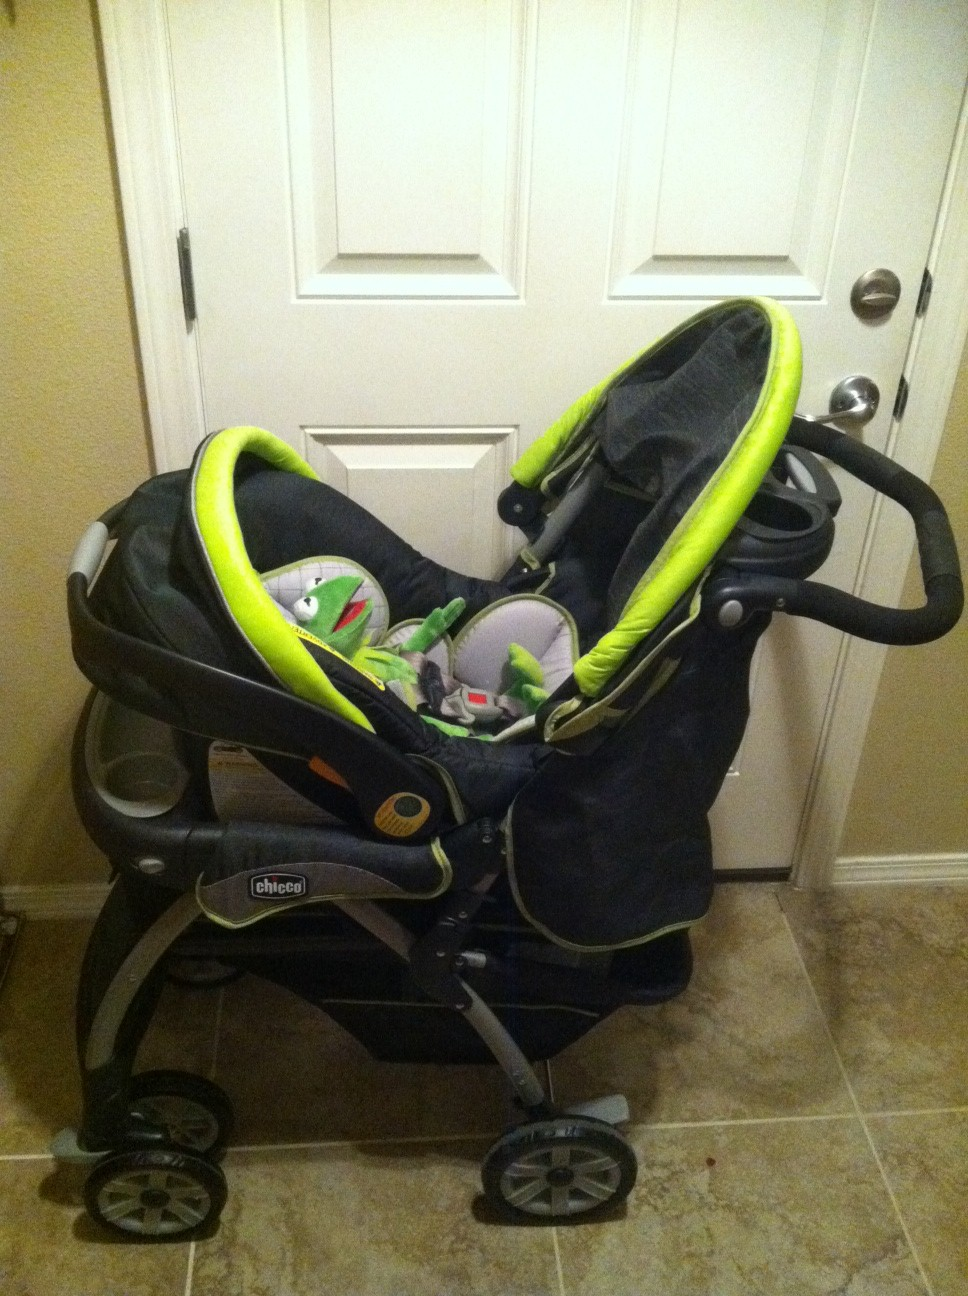 Baby Stroller That Turns Into Car Seat Retail Therapy – Did You Have Juice